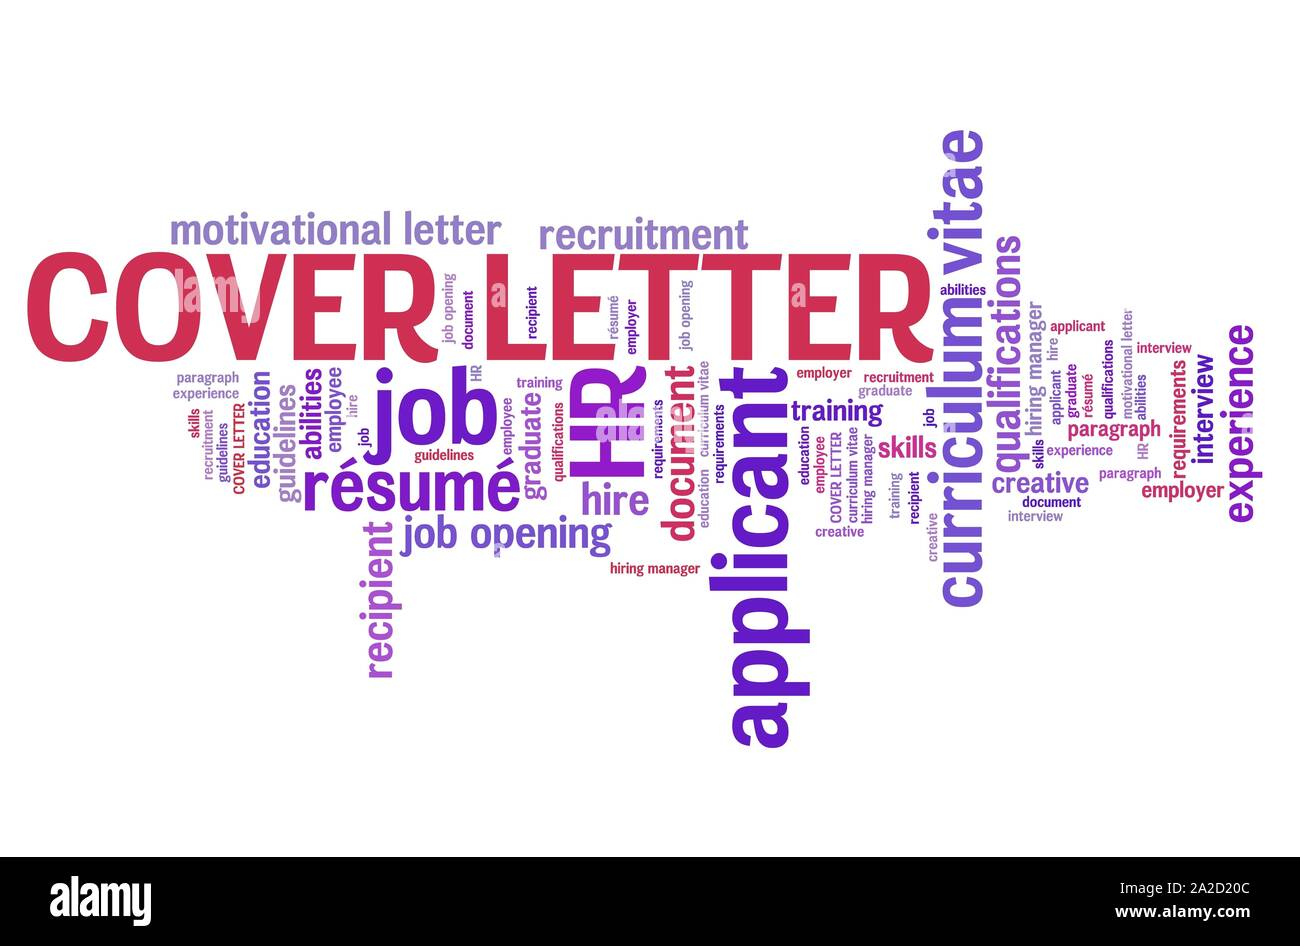 Cover letter - recruitment qualifications concept ...